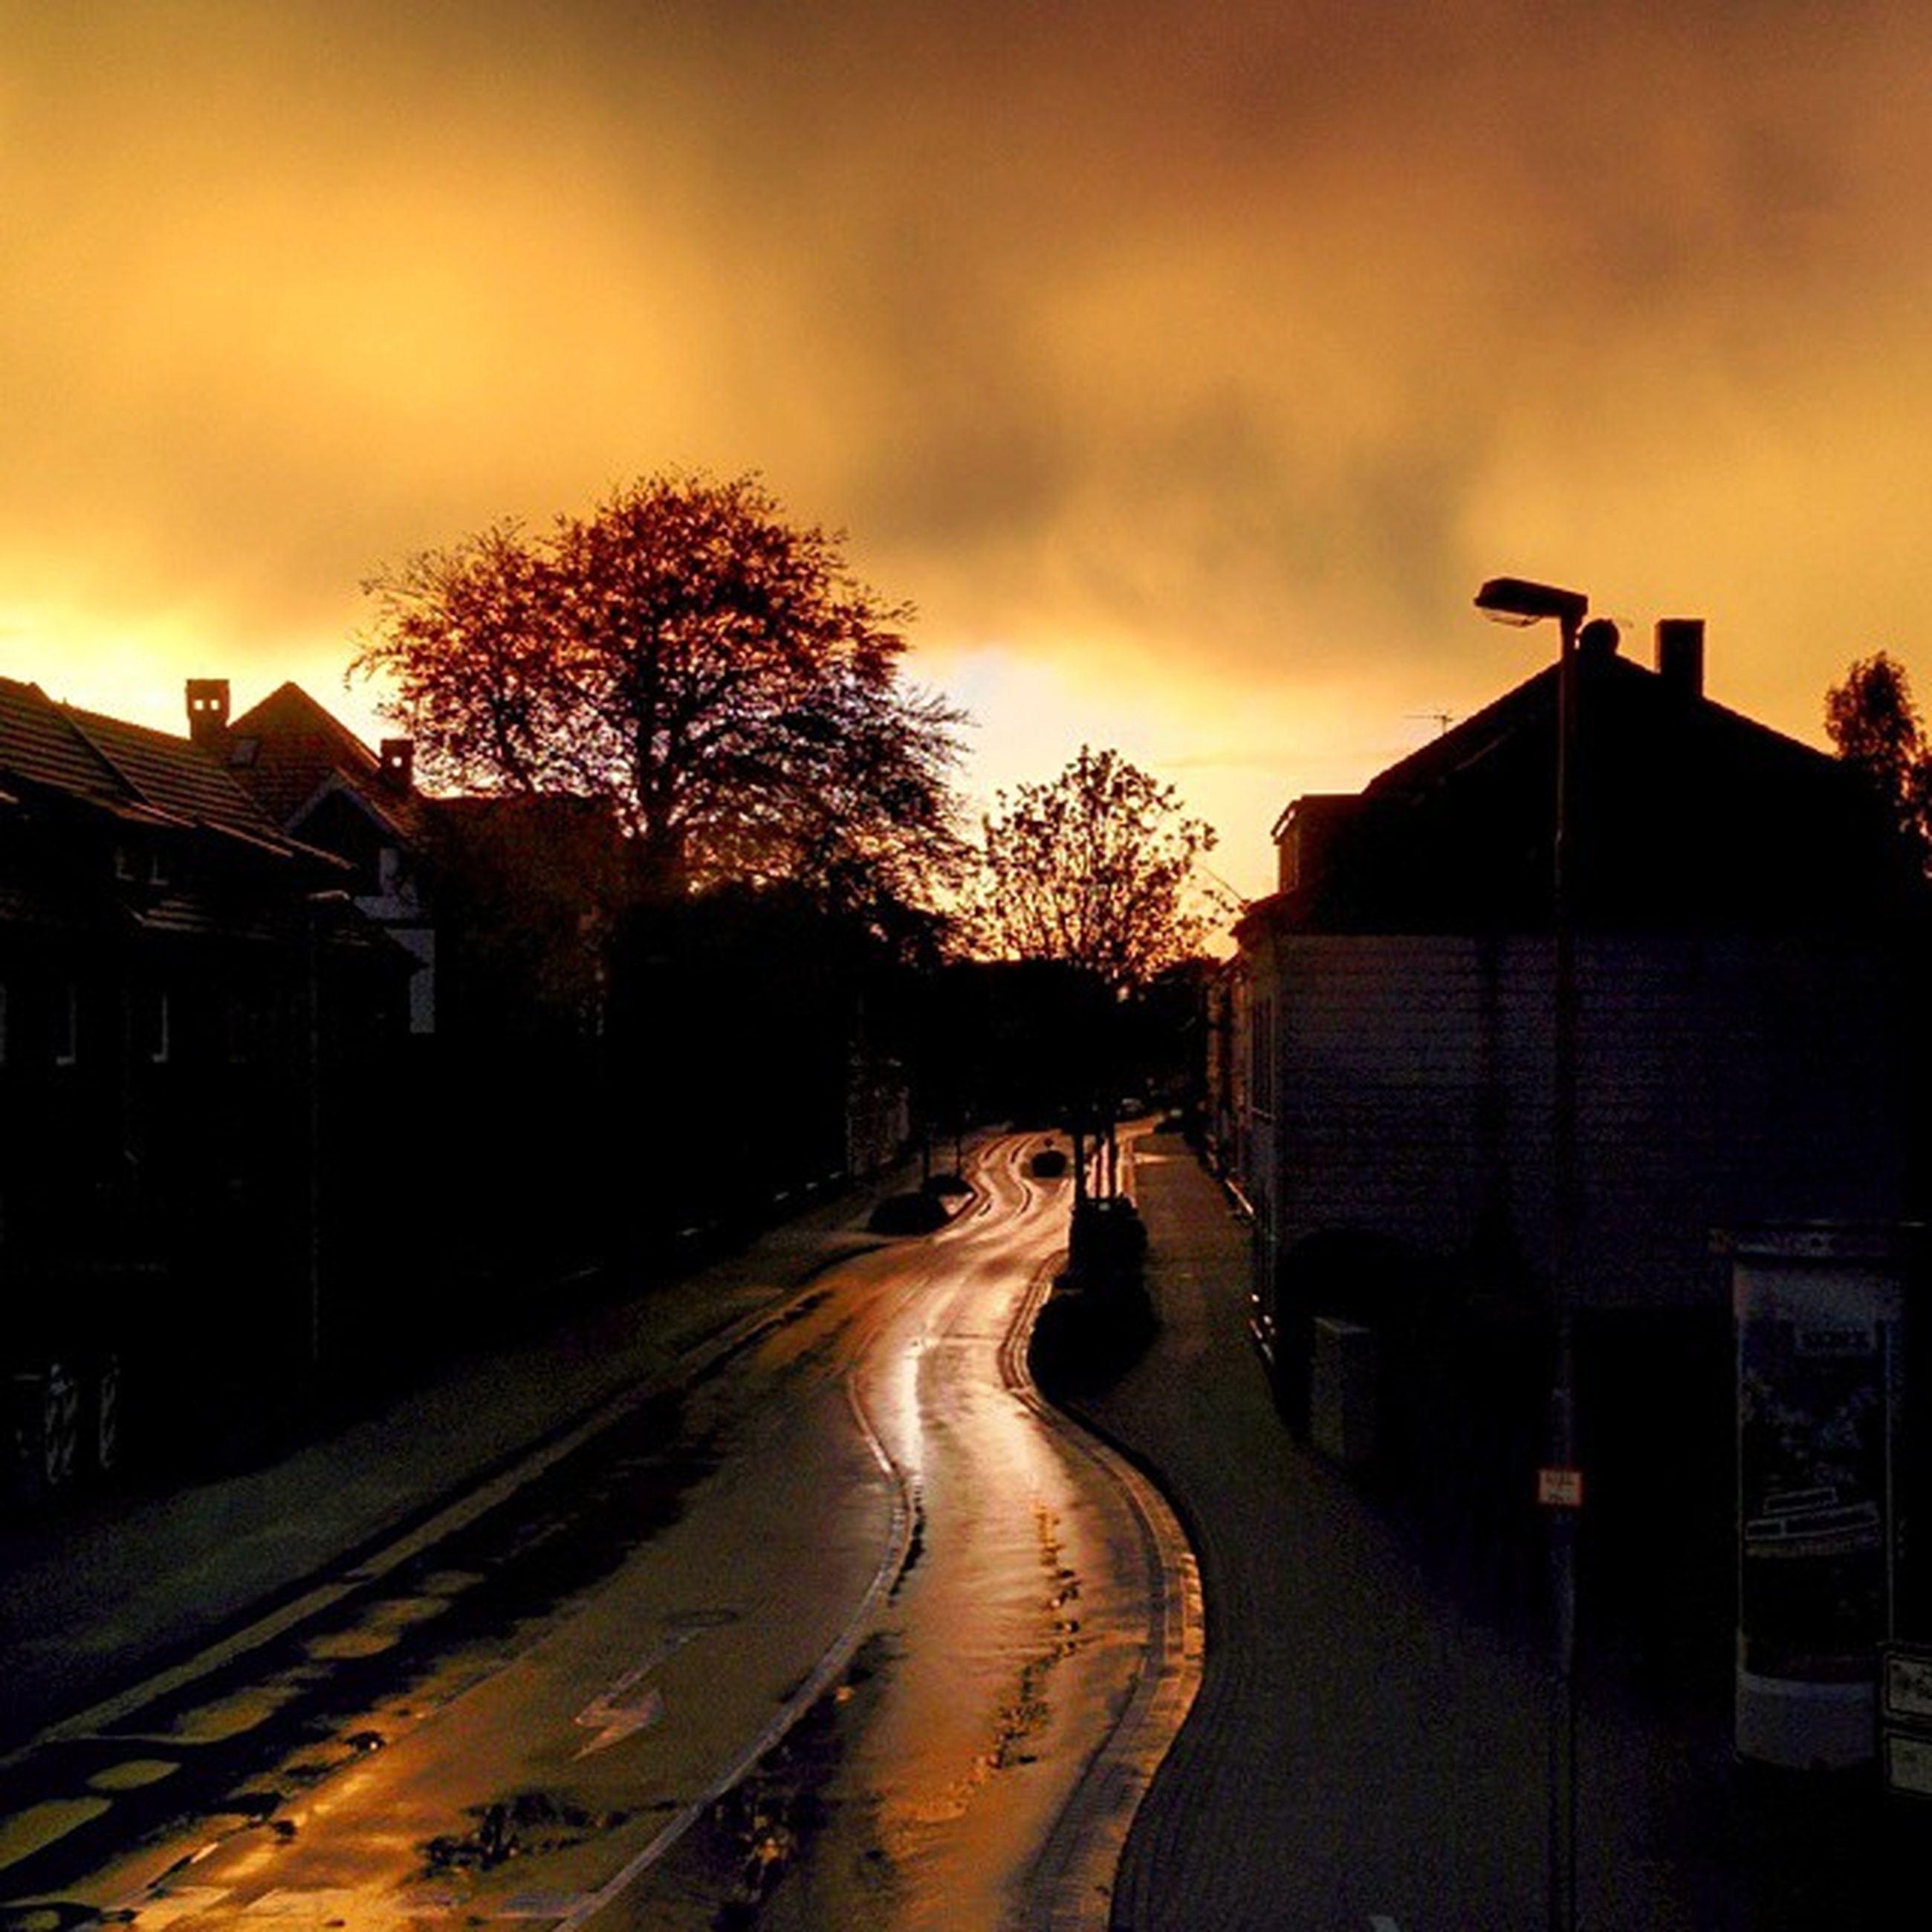 sunset, building exterior, architecture, sky, built structure, the way forward, transportation, tree, house, road, orange color, street, cloud - sky, dusk, bare tree, diminishing perspective, outdoors, residential structure, silhouette, no people